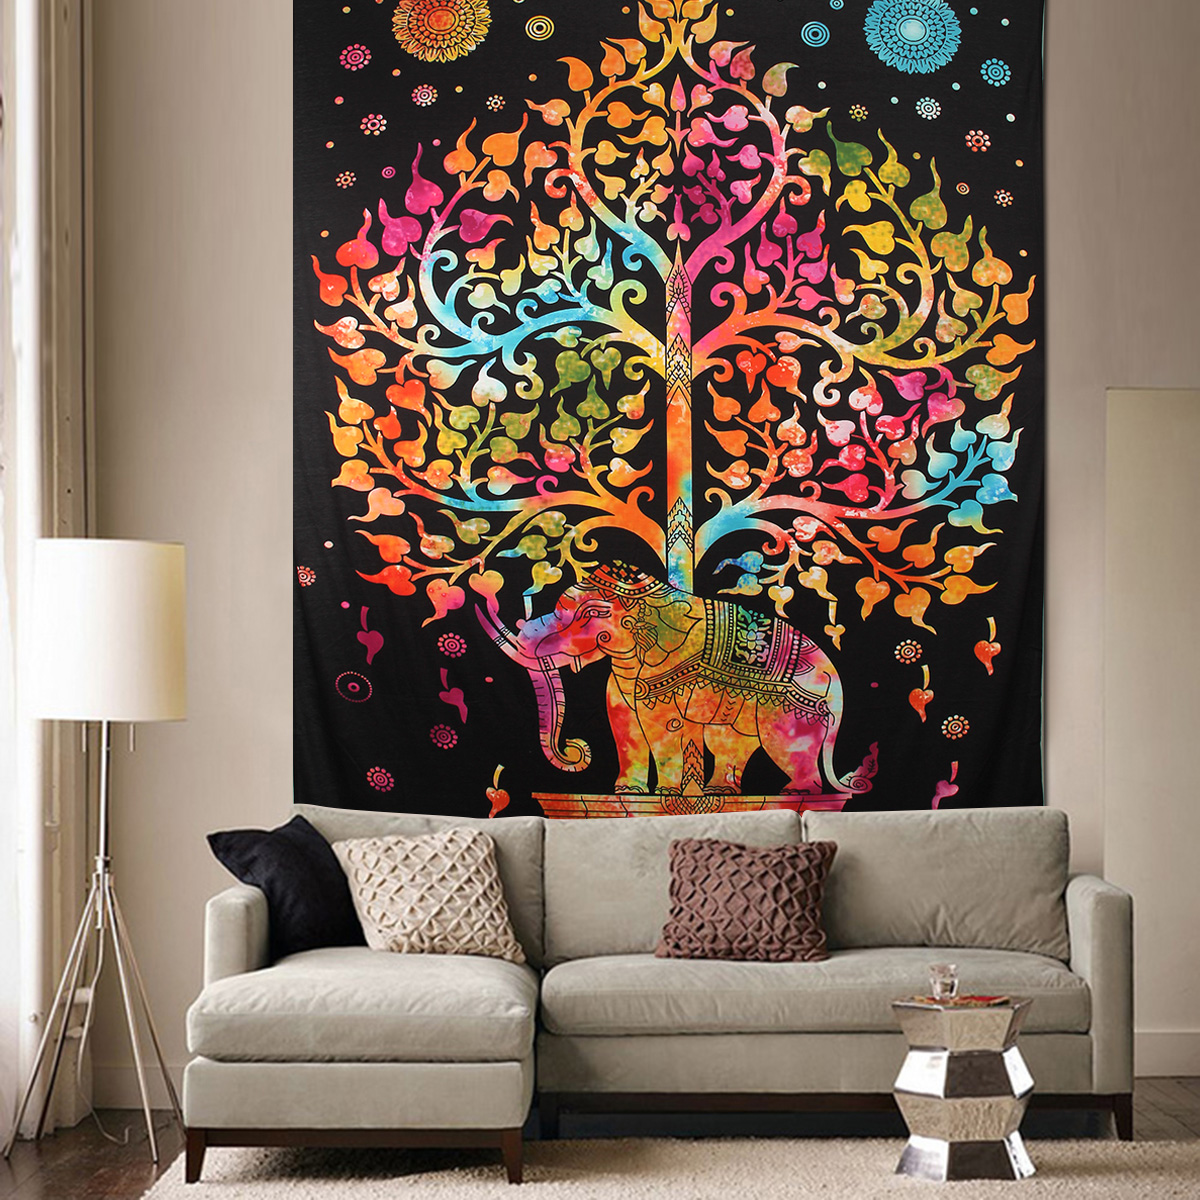 Elephant Mandala Tapestry Throw Towel Hippie Tapestry Floral Printed Home Decor Wall Tapestries Bedspread 210*150CM 27